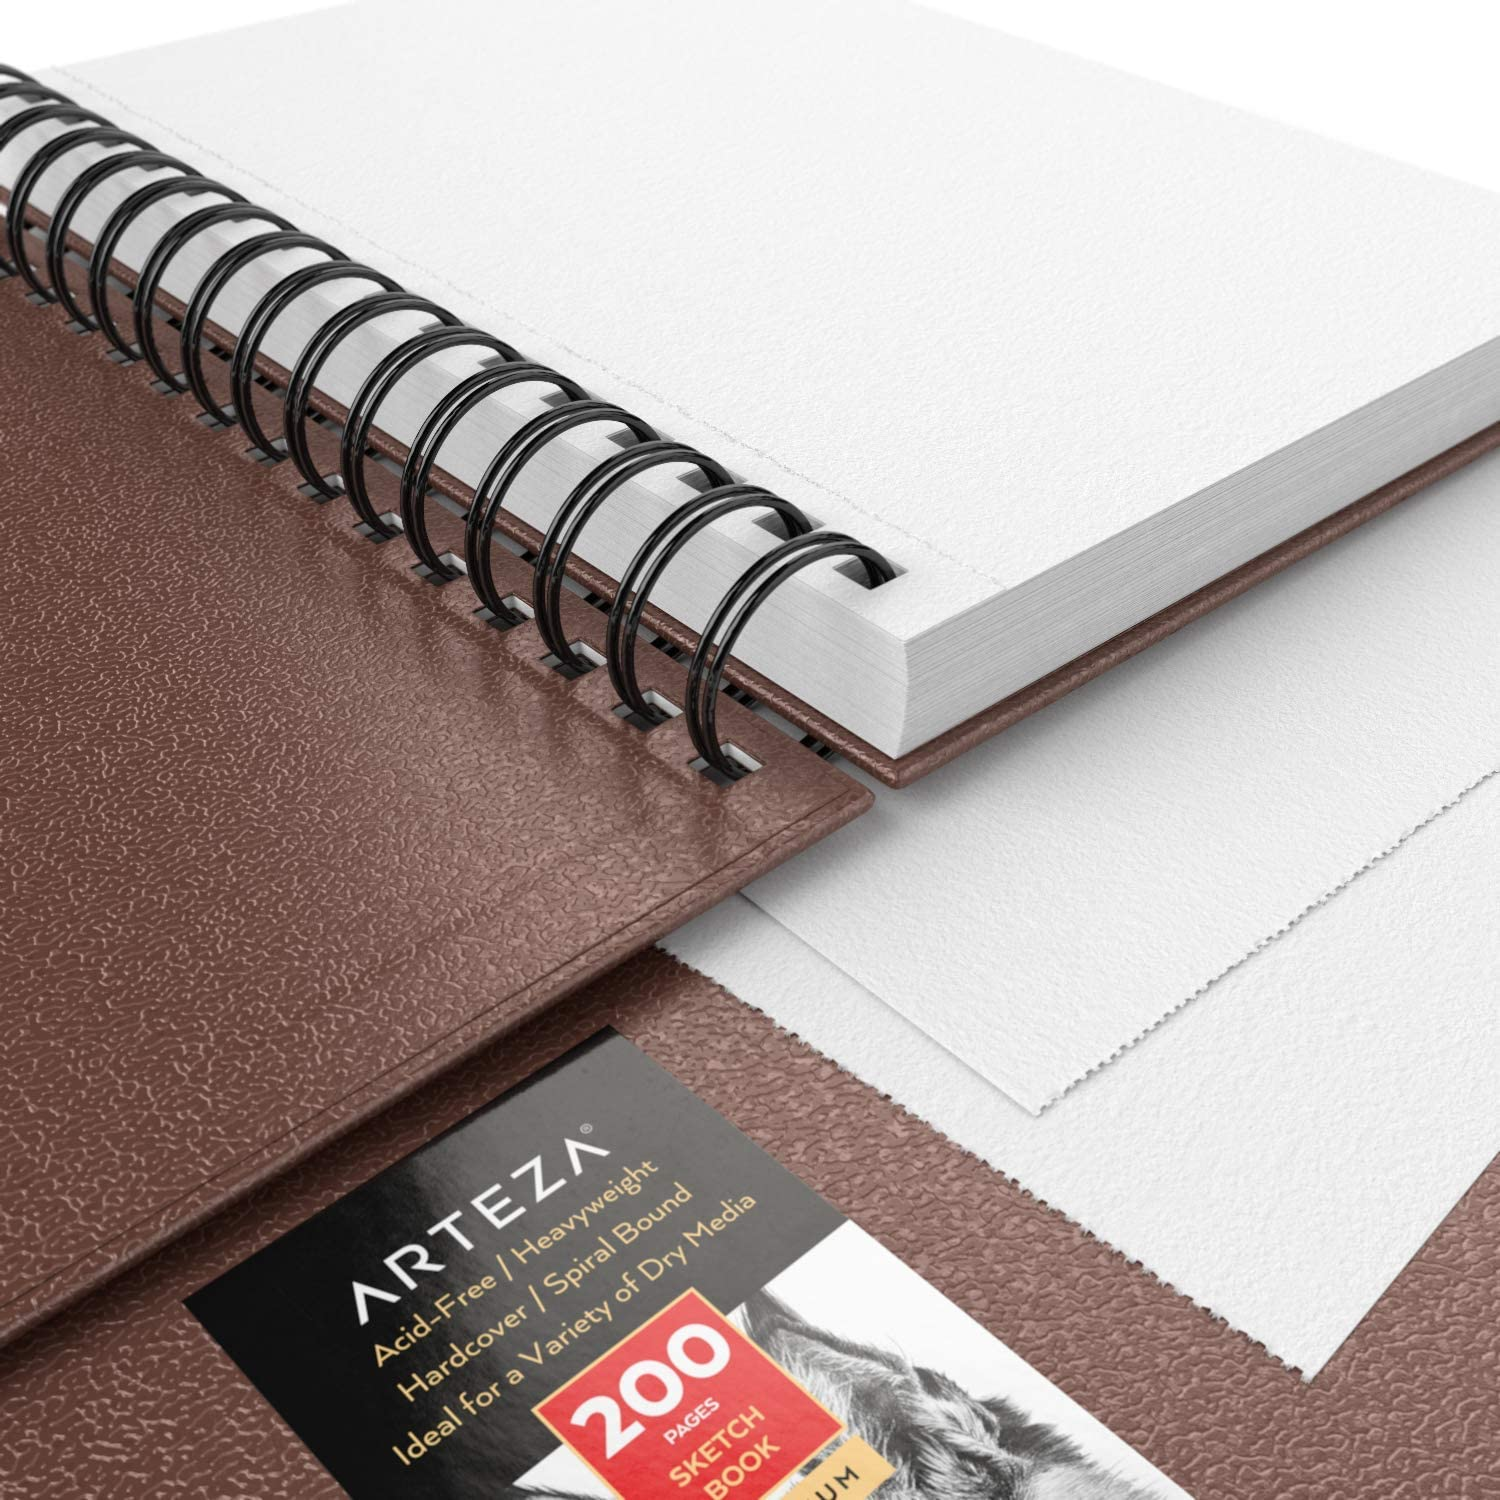 300 Sheets Total 3-Pack Brown Drawing Pads Hardcover Sketchbook Charcoal Crayons /& Other Dry Media Spiral-Bound 68 lb 100 GSM Use with Pencils Pens 5.5x8.5-inch Arteza Sketch Book